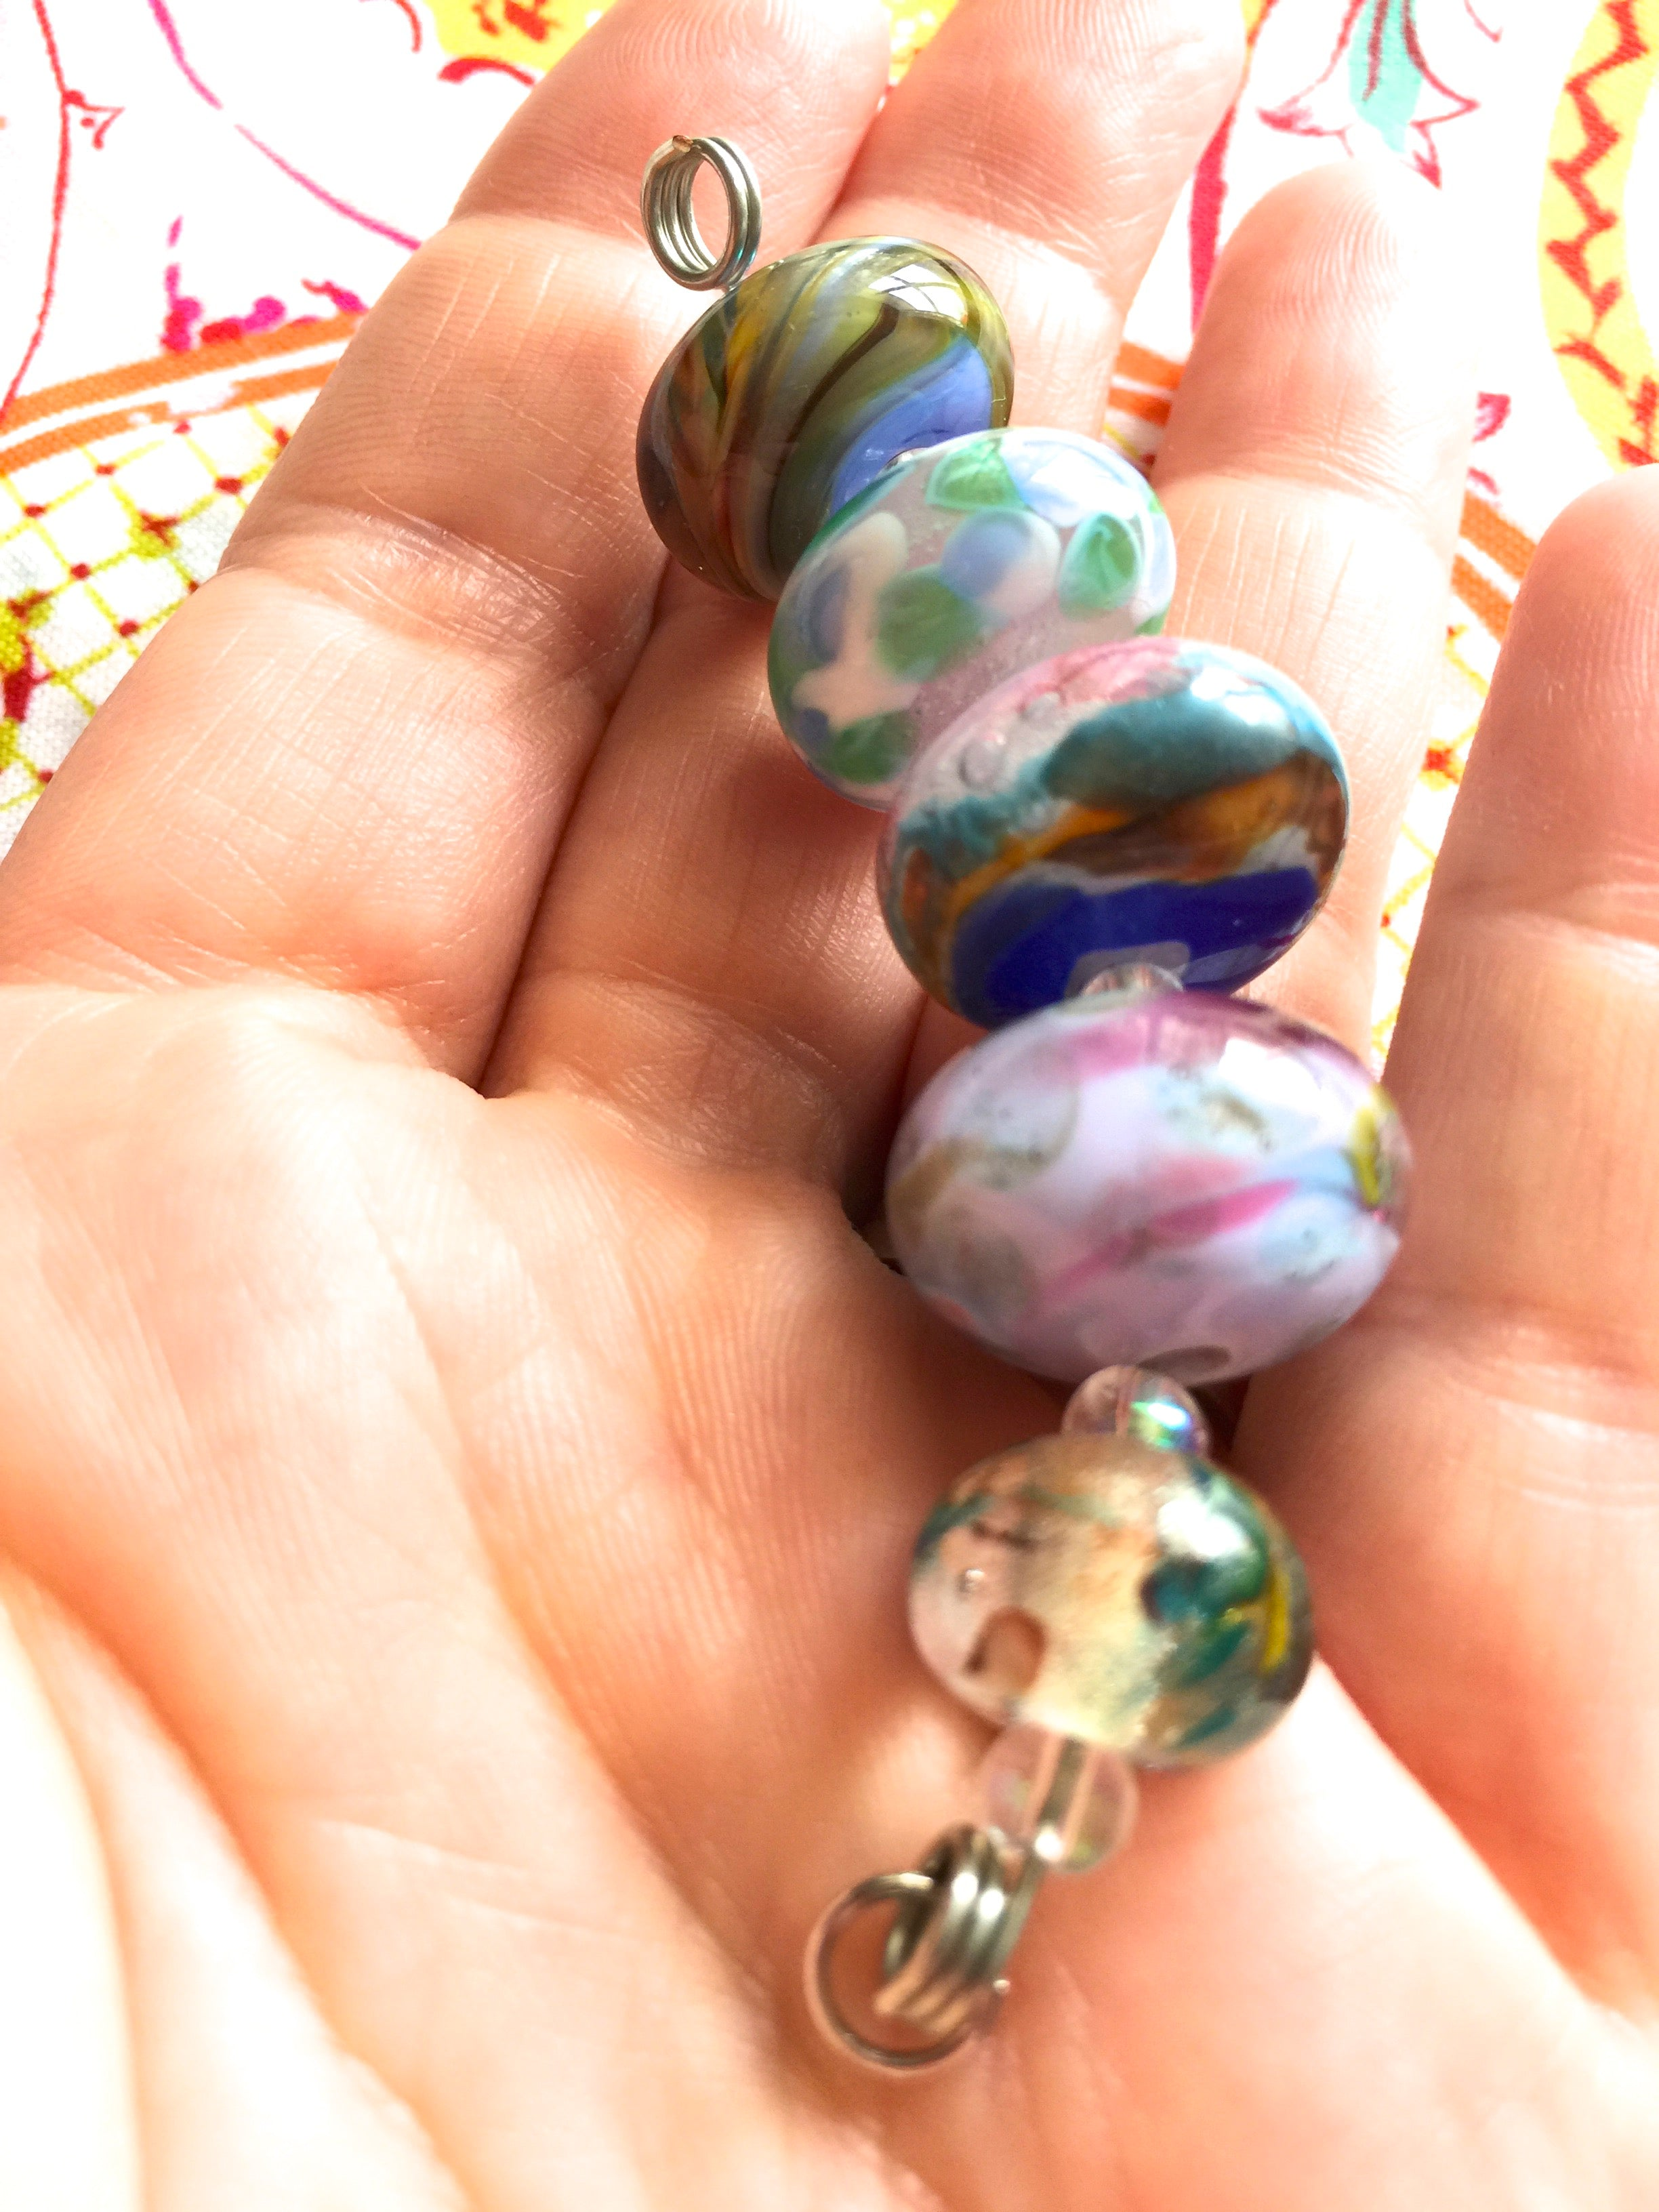 Set of 5 Colorful Handcrafted Lampwork Glass Beads with Colorful Swirls and Dots in pretty spring colors.